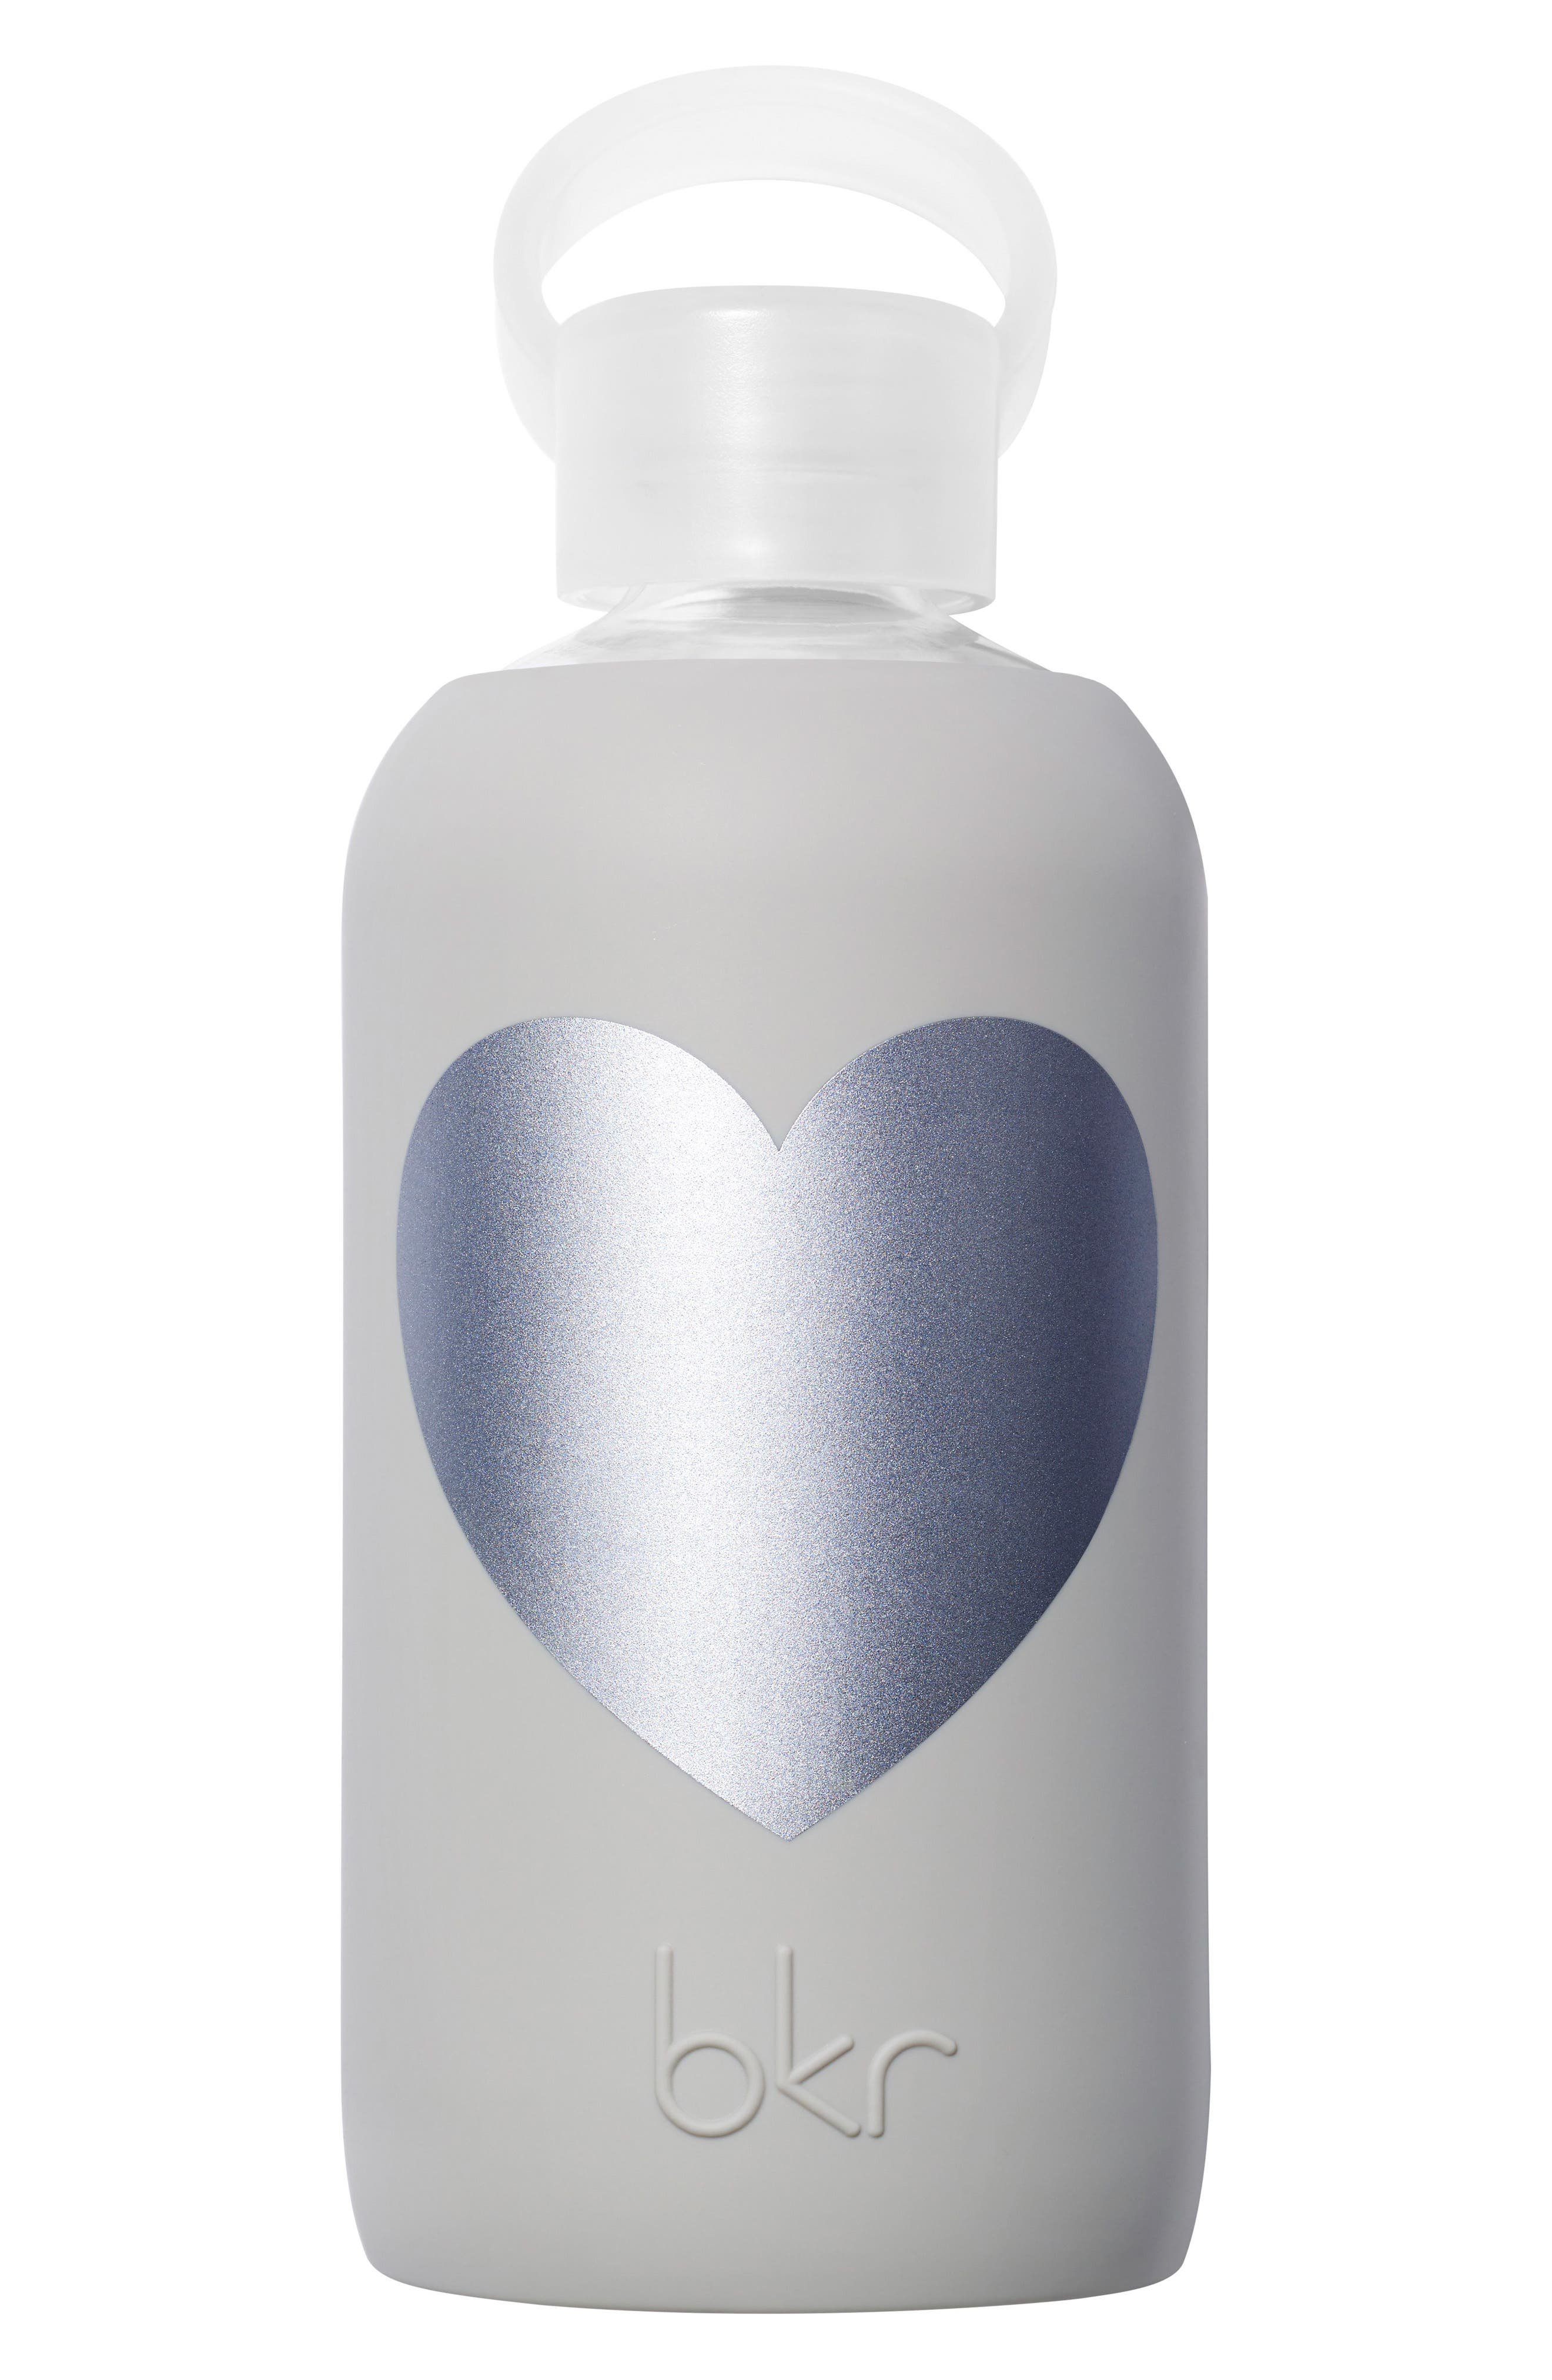 Heart 16-Ounce Glass Water Bottle,                         Main,                         color, 020